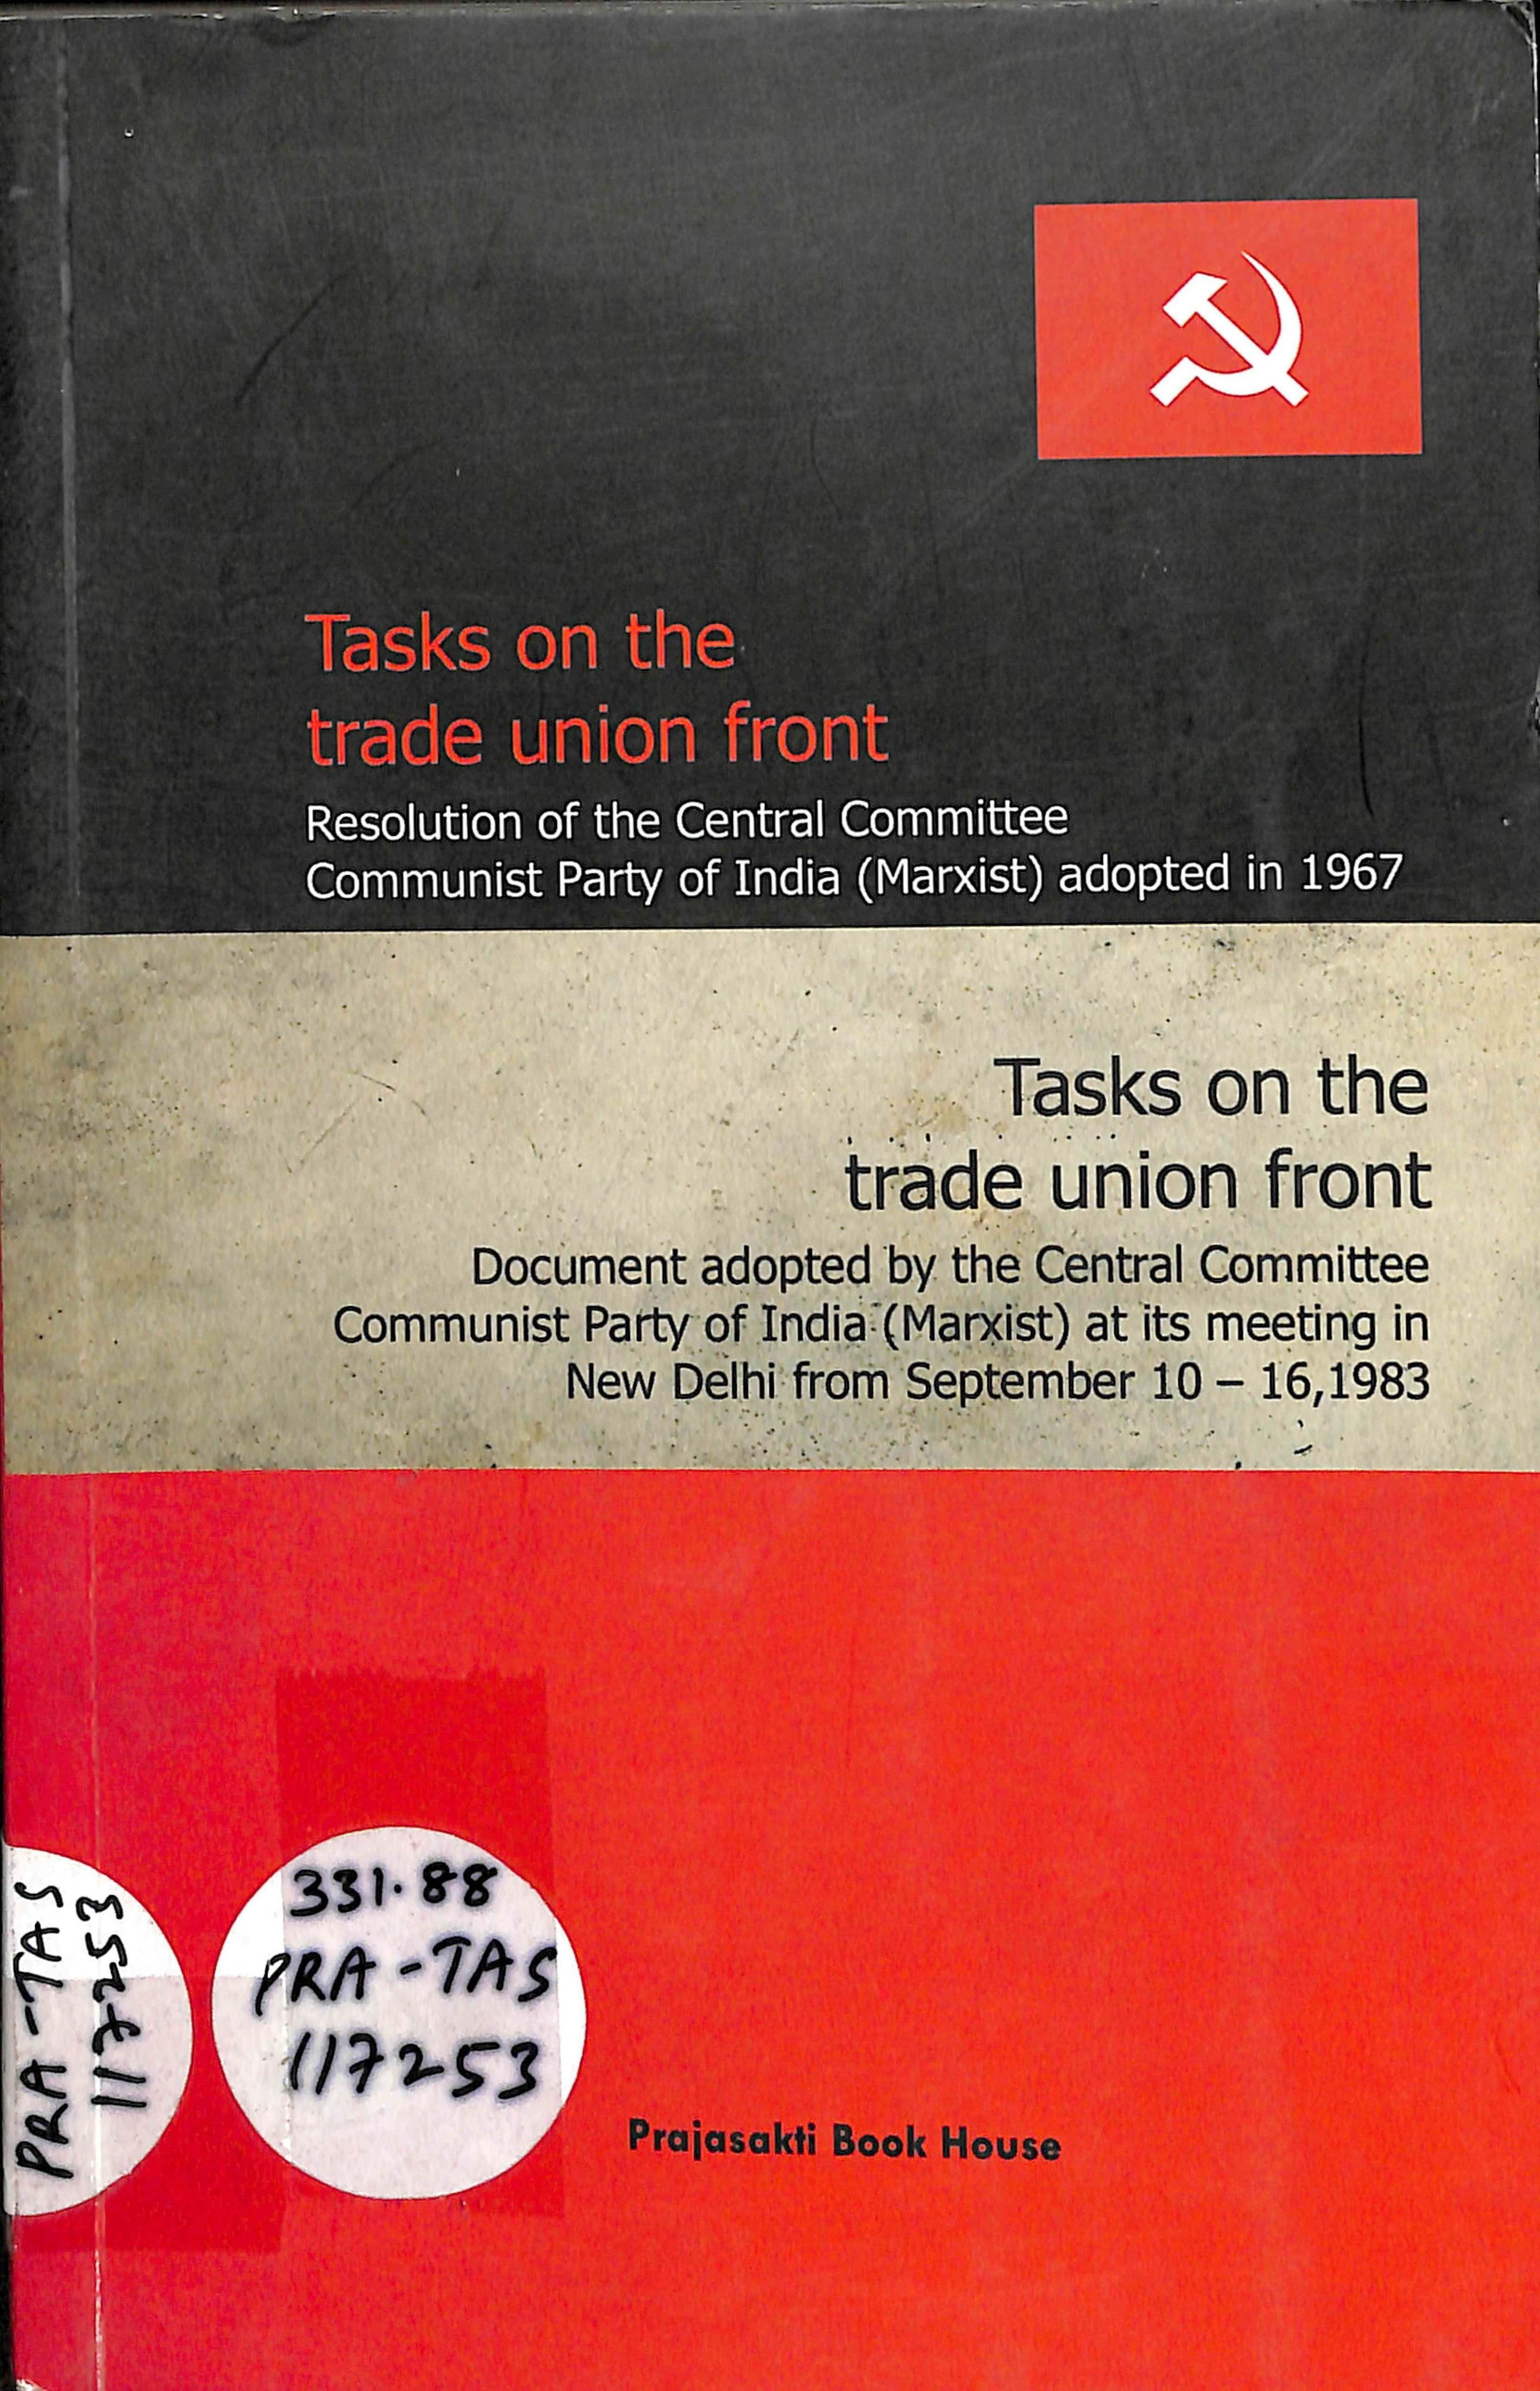 Tasks on the trade union front resoultion of the central committee communist party of India